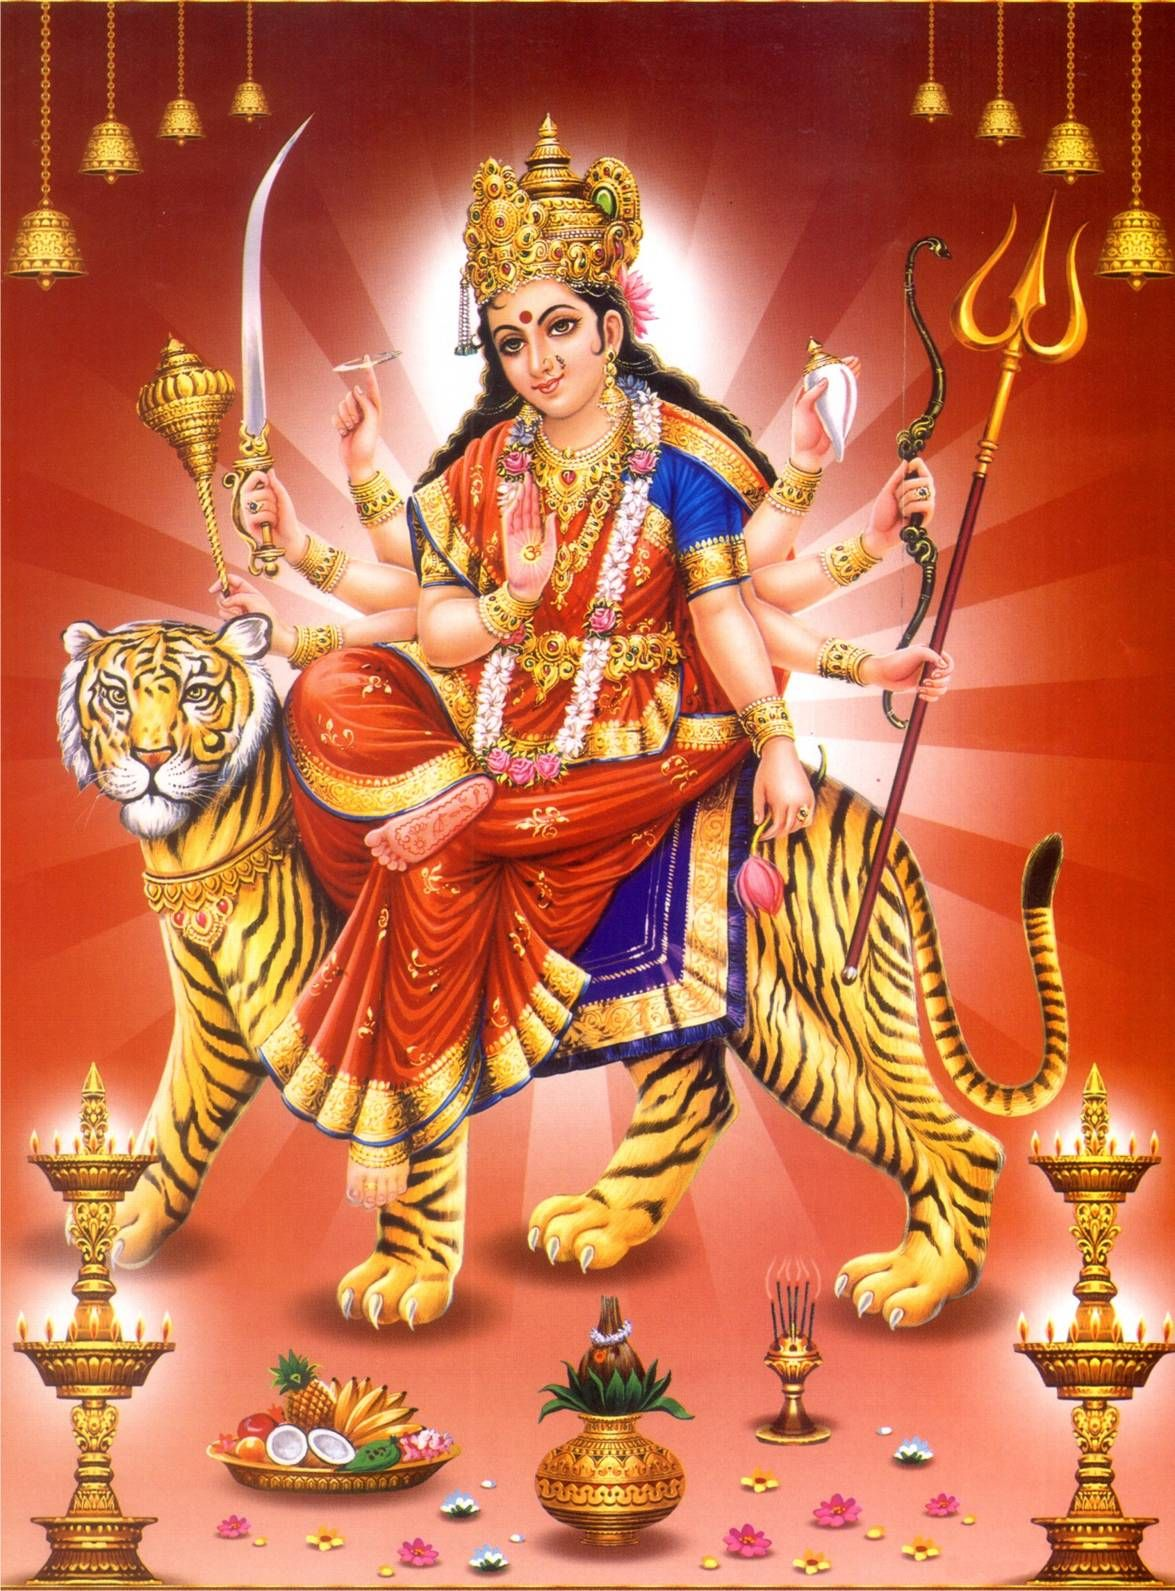 Jai Mata Di Wallpapers For Desktop Durga Chalisa Durga Maa Durga